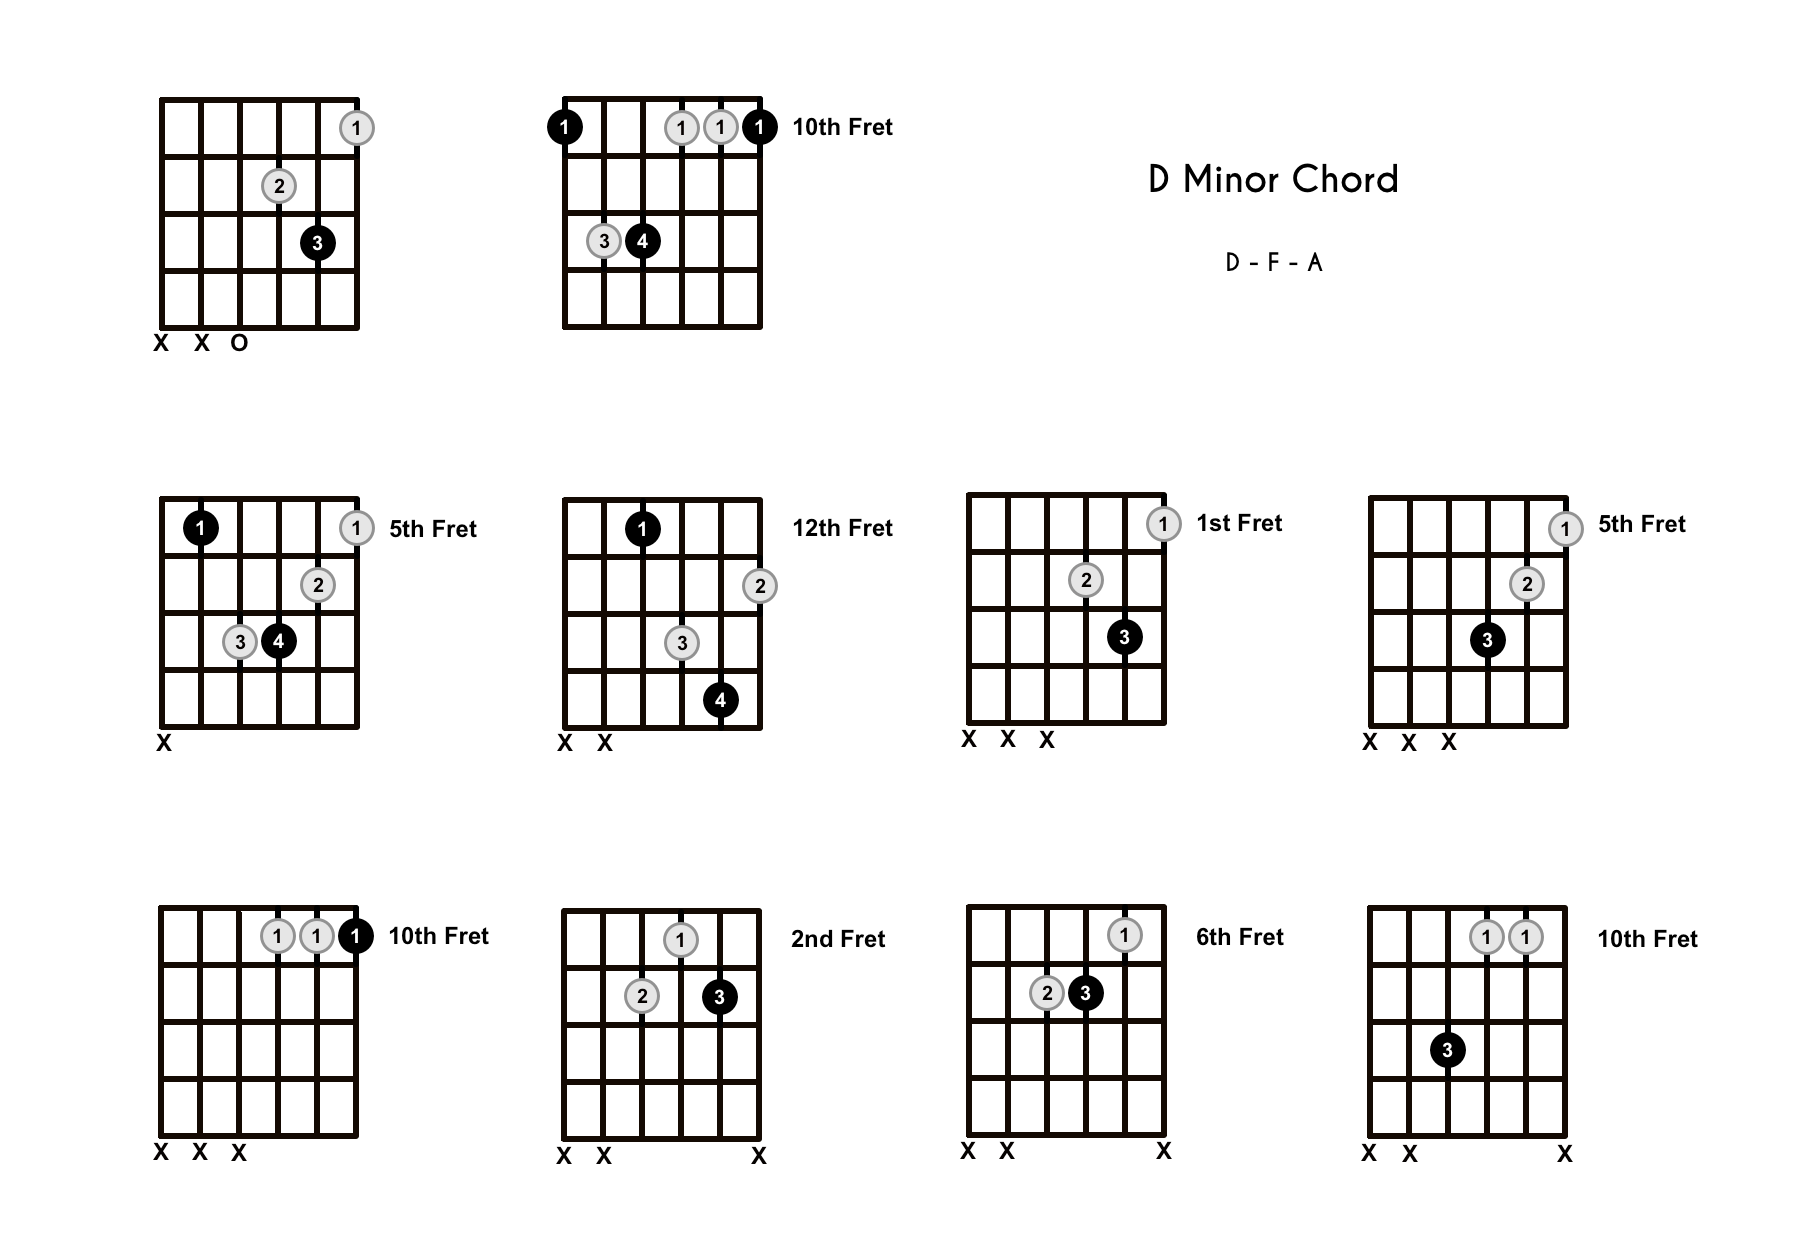 Dm Chord on the Guitar (D Minor) – Diagrams, Finger Positions, Theory